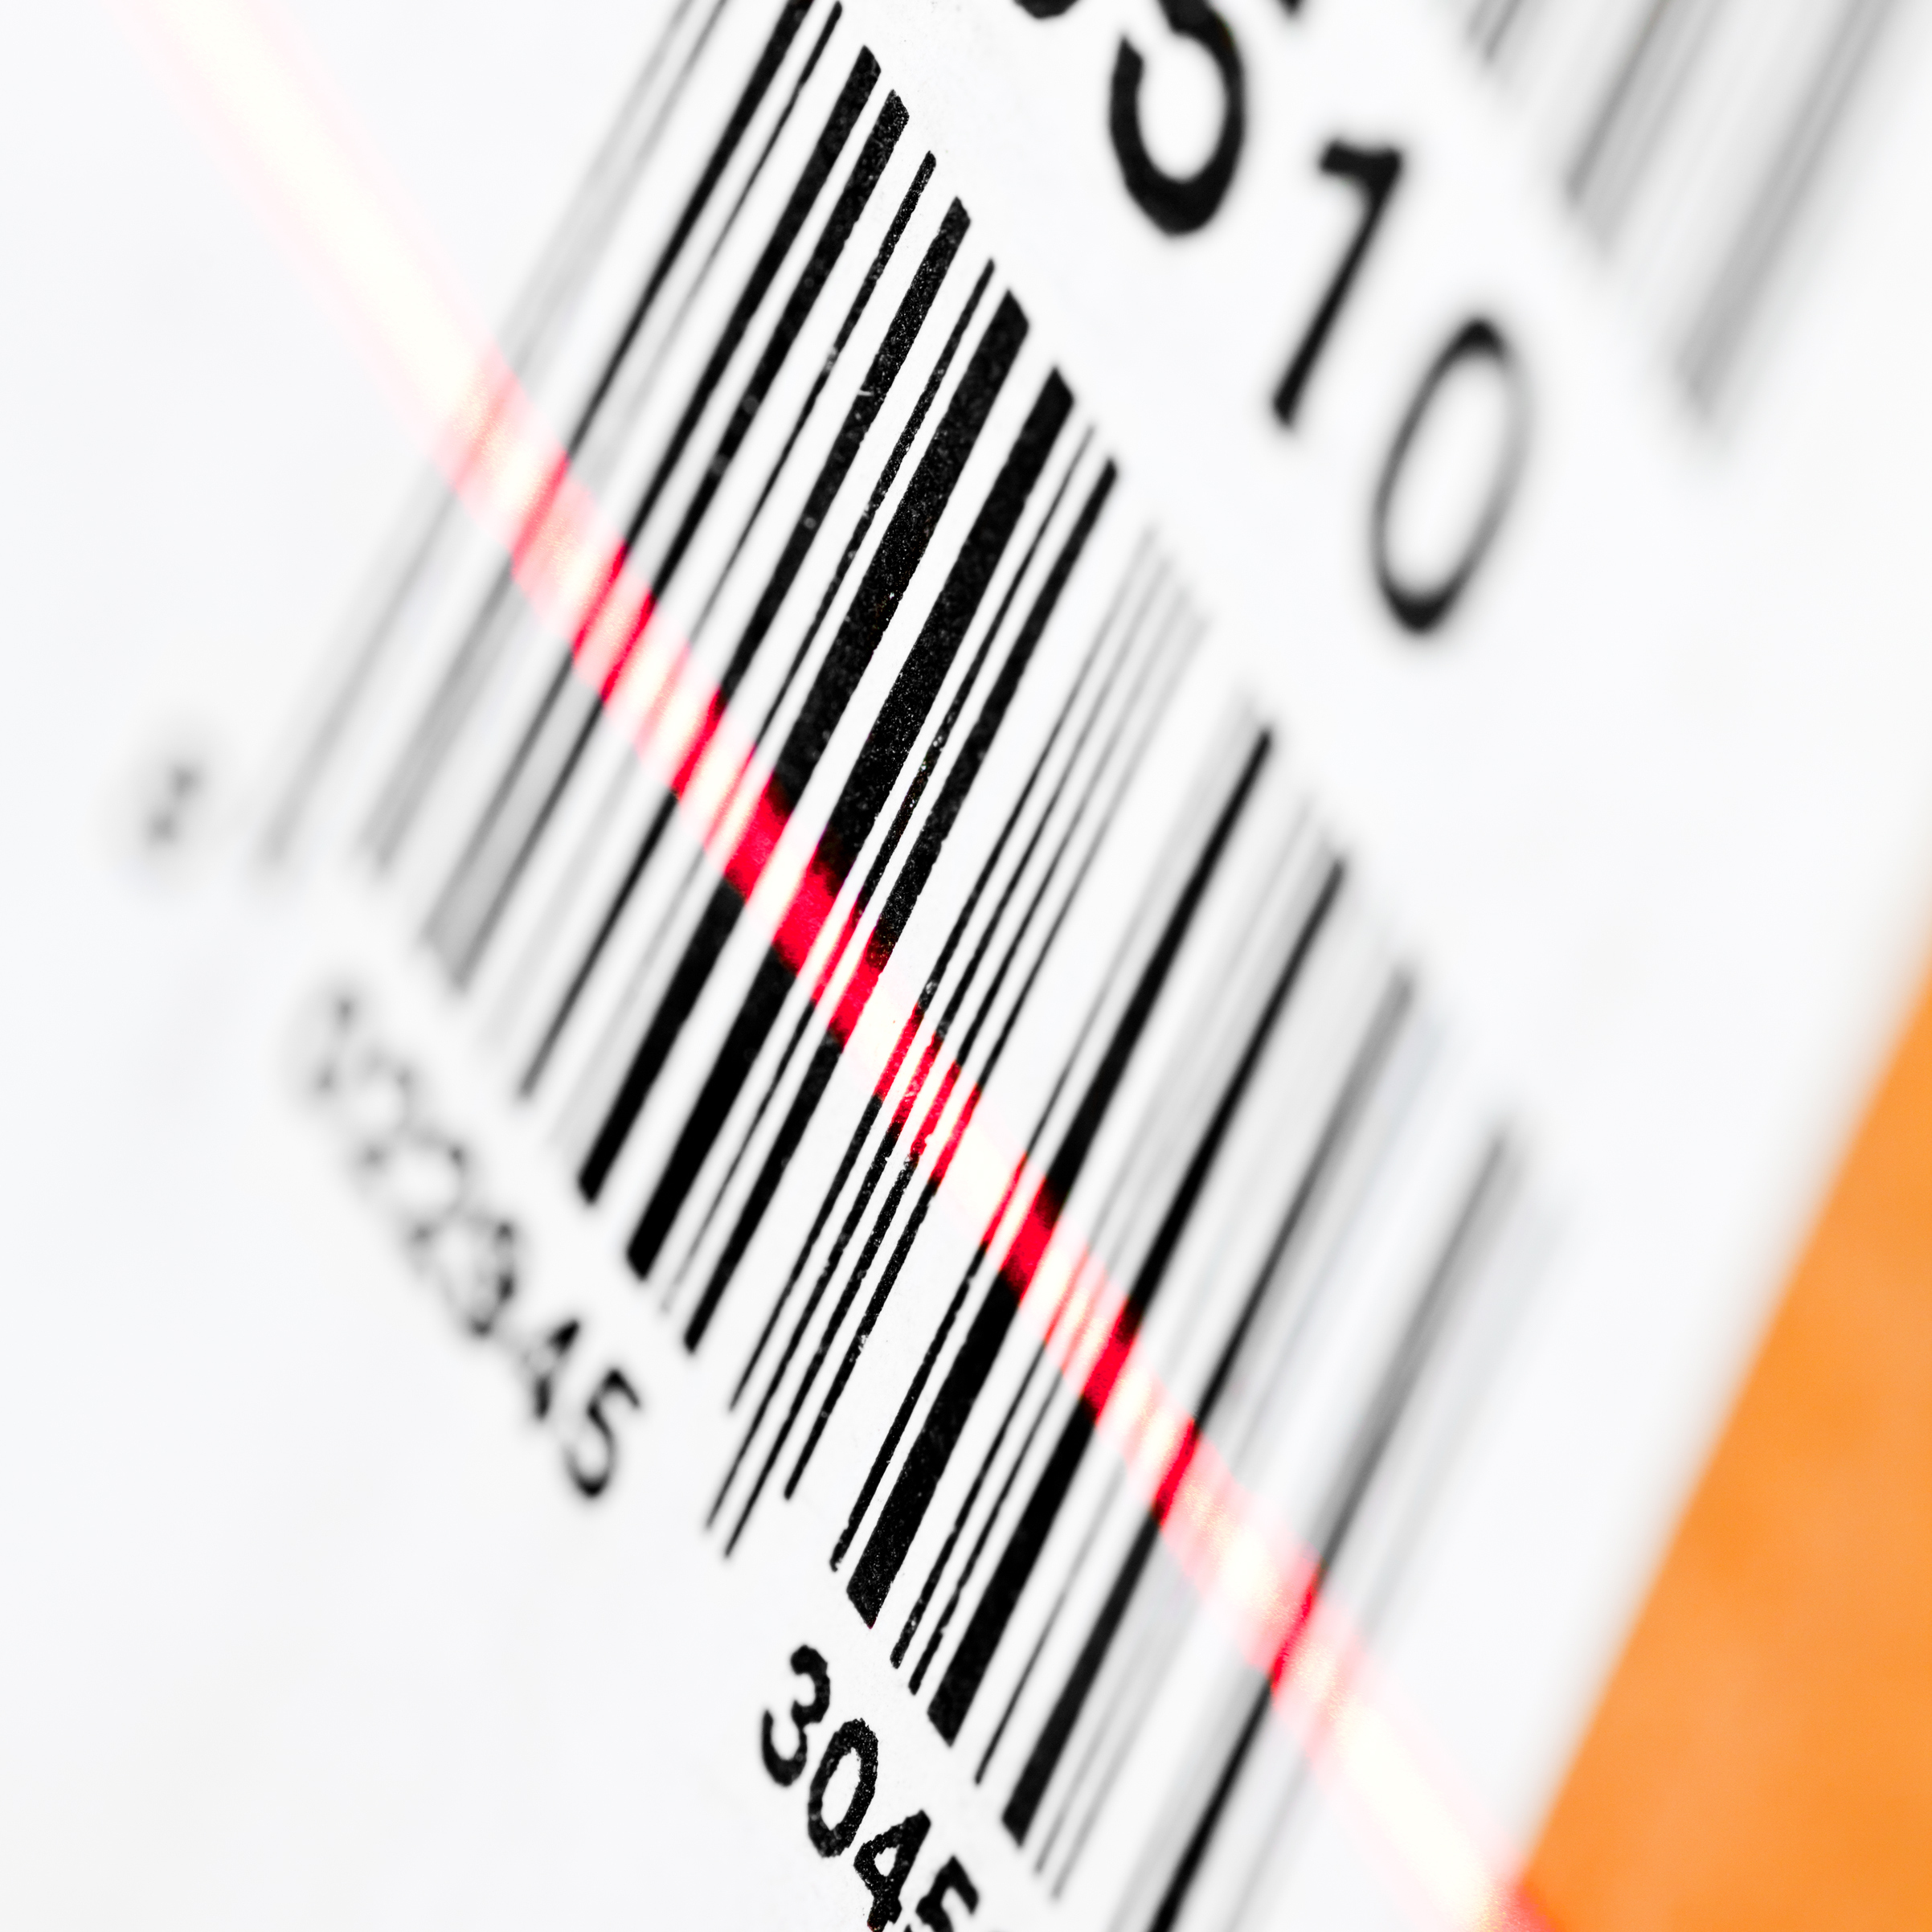 Barcodes & Labels - Order Printed Barcode Labels for LibraryBooks and Assets.MUSAC's partner, Library Barcode Services, now provides this service. To order please visit their website below.